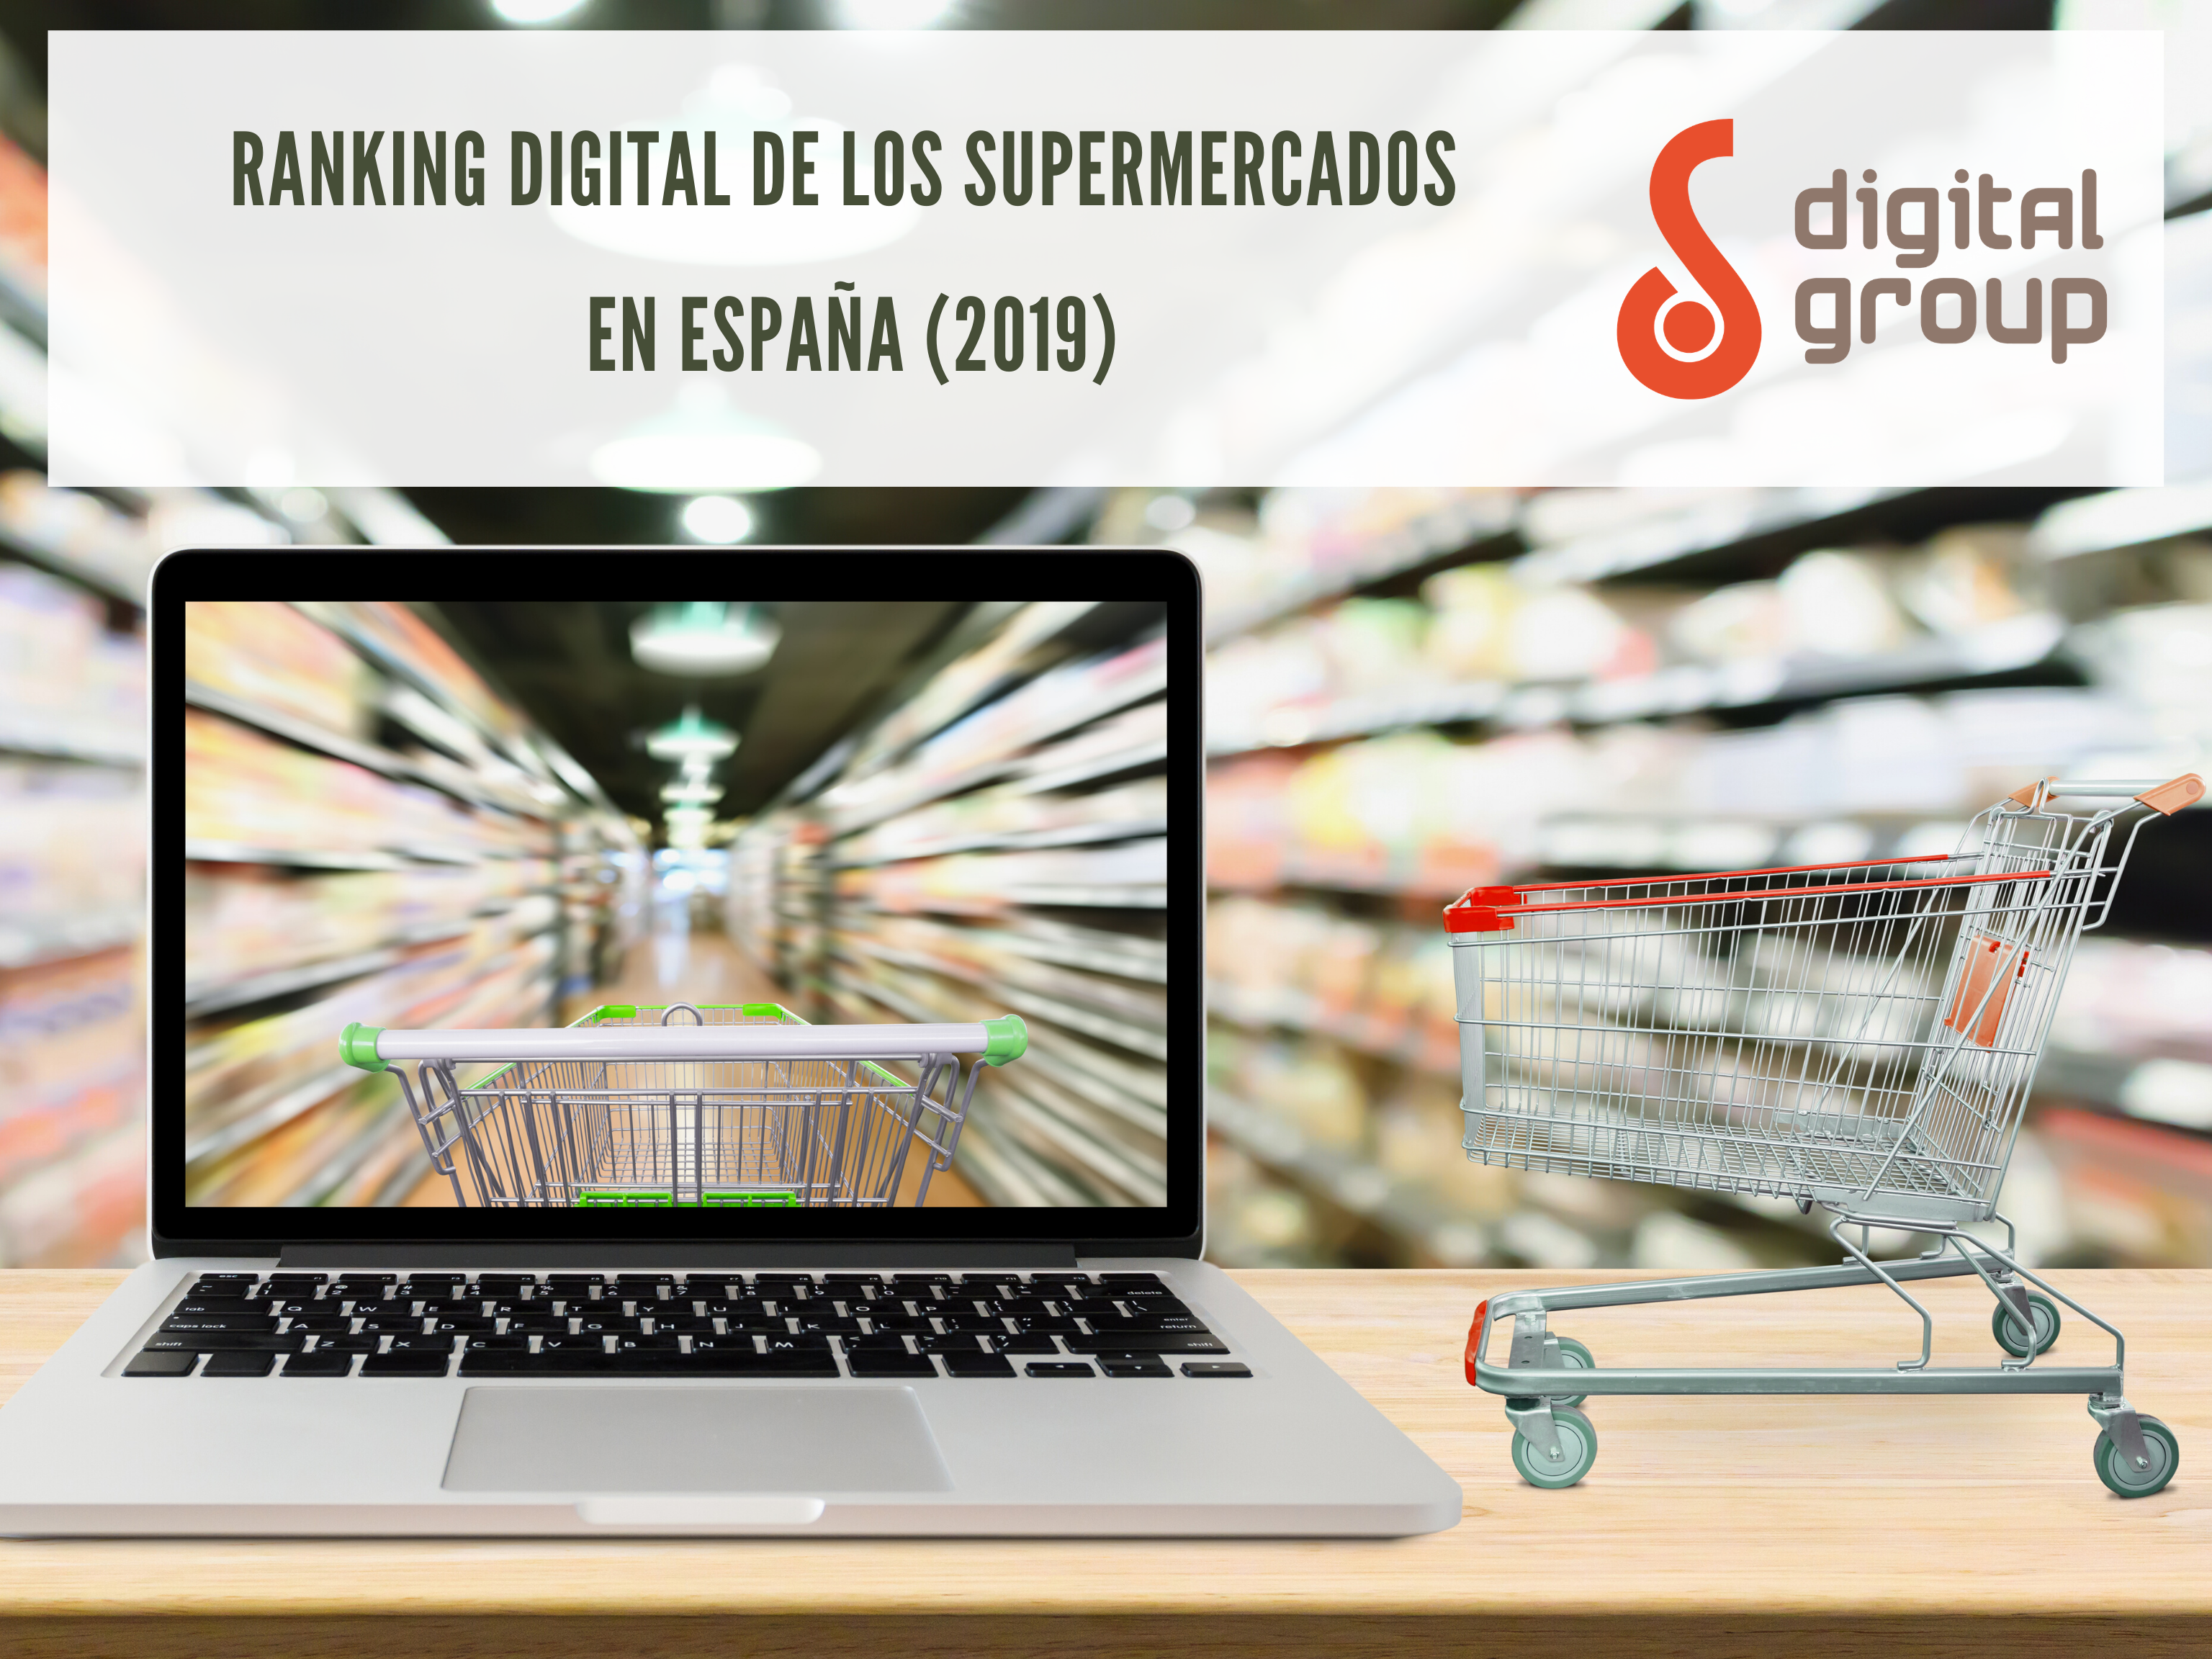 Ranking Digital de los Supermercados en España (2019) -  DigitalGroup.es